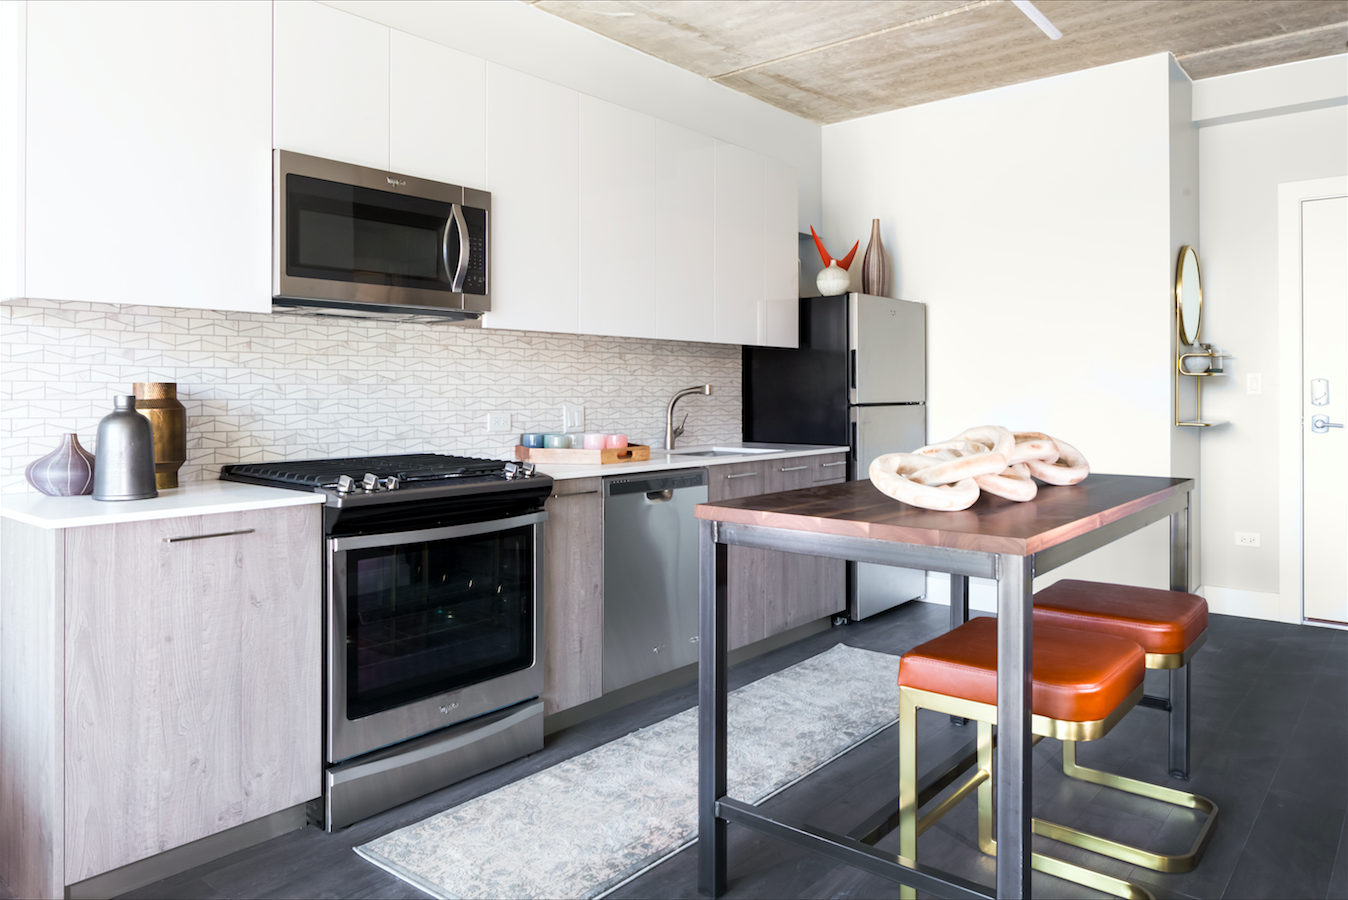 Apartments At Centrum Wicker Park Feature High End Finishes, Italian  Cabinetry, And Plank Flooring, But The Buildingu0027s Best Feature Is Itu0027s  Division Street ...